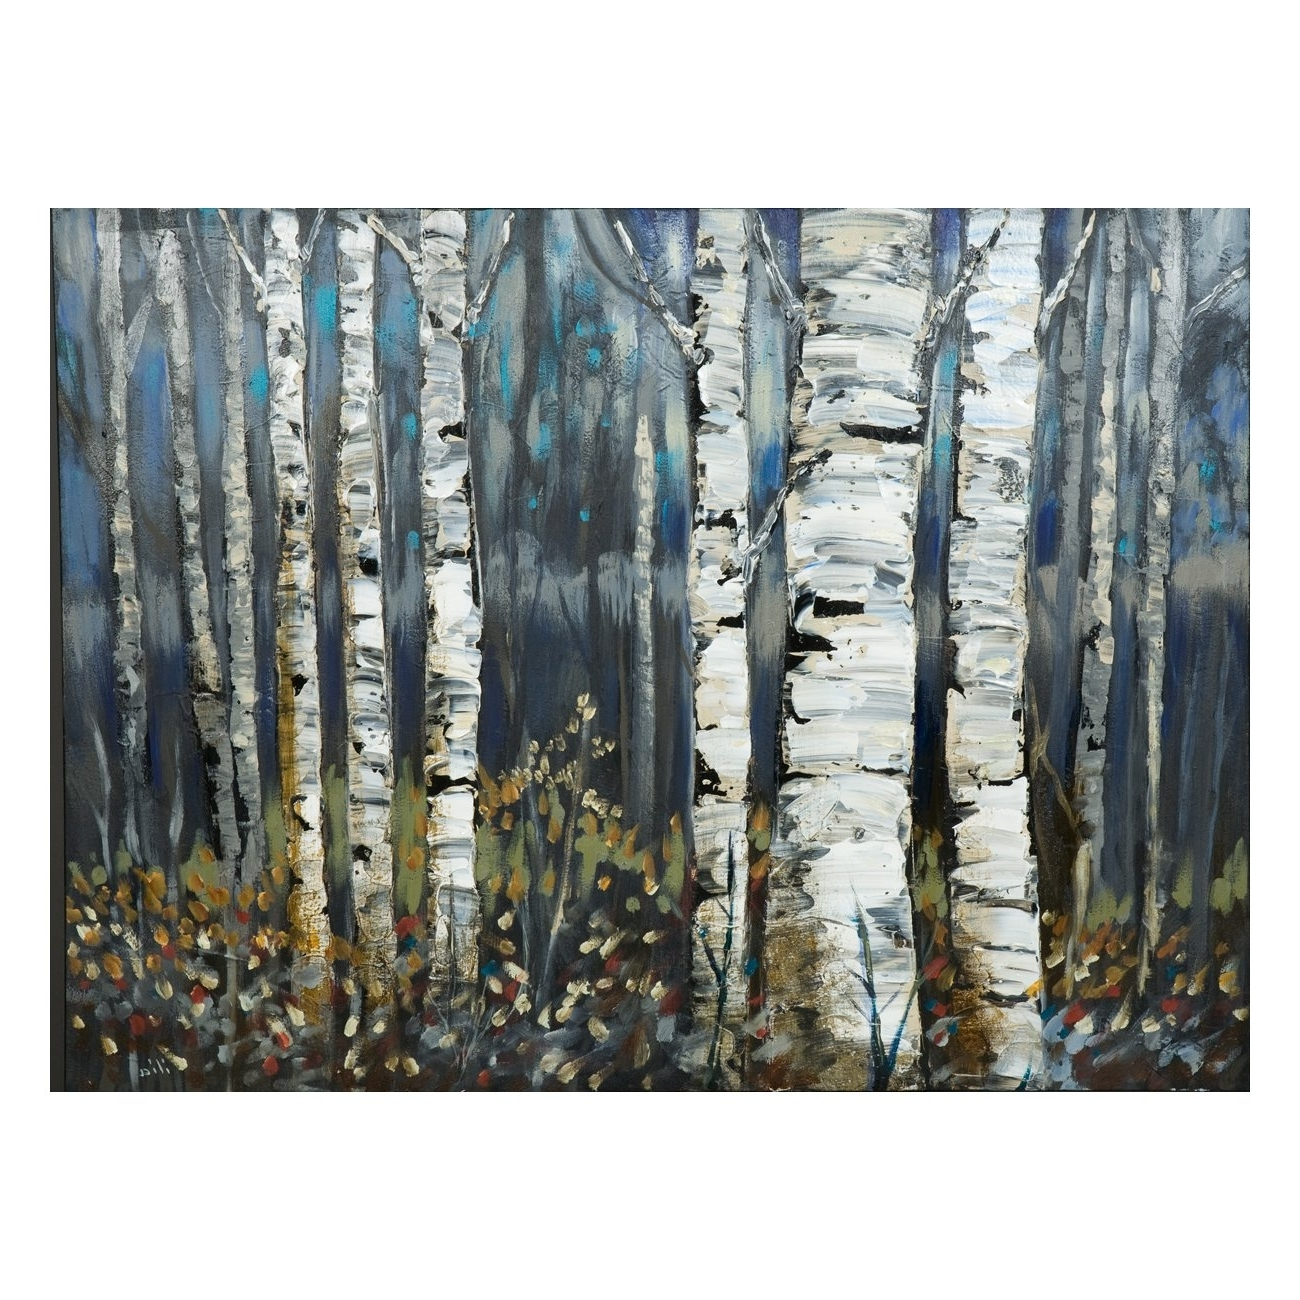 Canvas Wall Art In Canada In Best And Newest Laila's Ili142 11f Birch Trees Canvas Art (View 4 of 15)